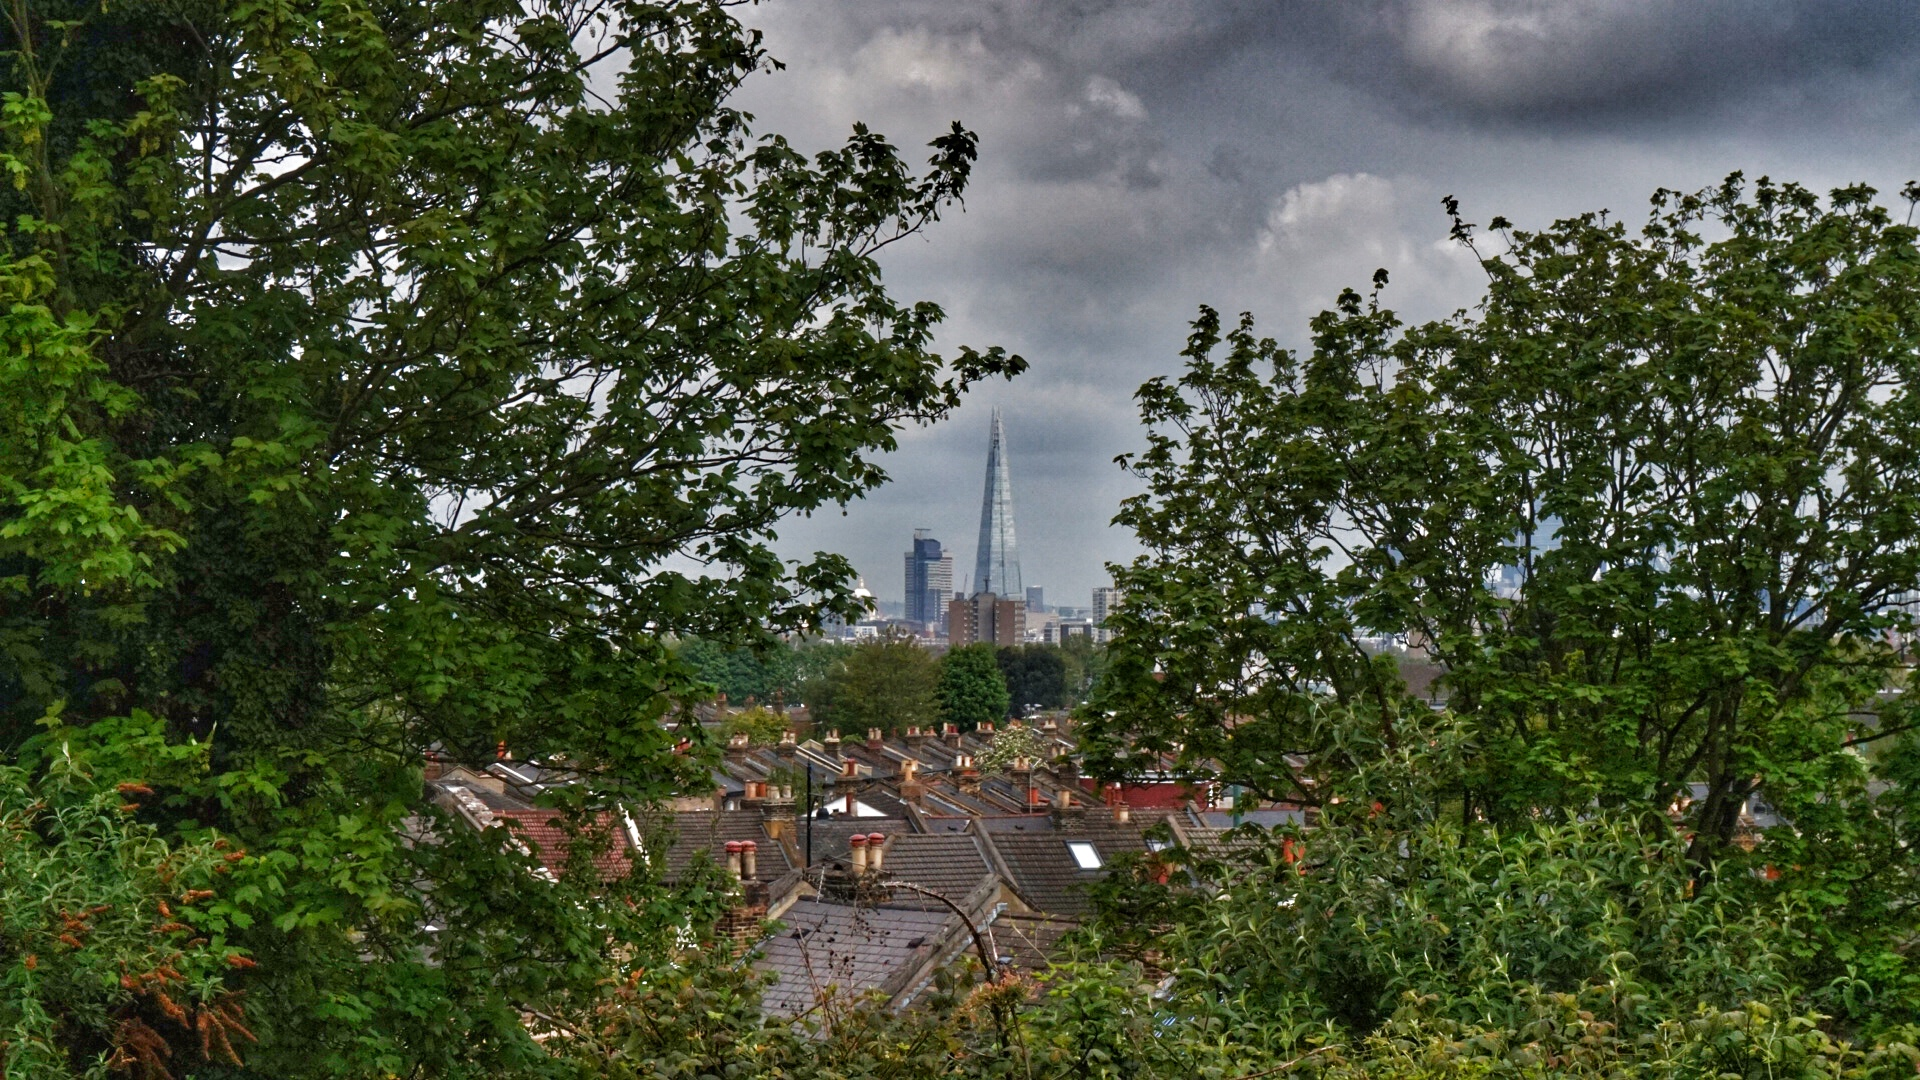 view of The Shard and other London rooftops through some trees on a moody grey day